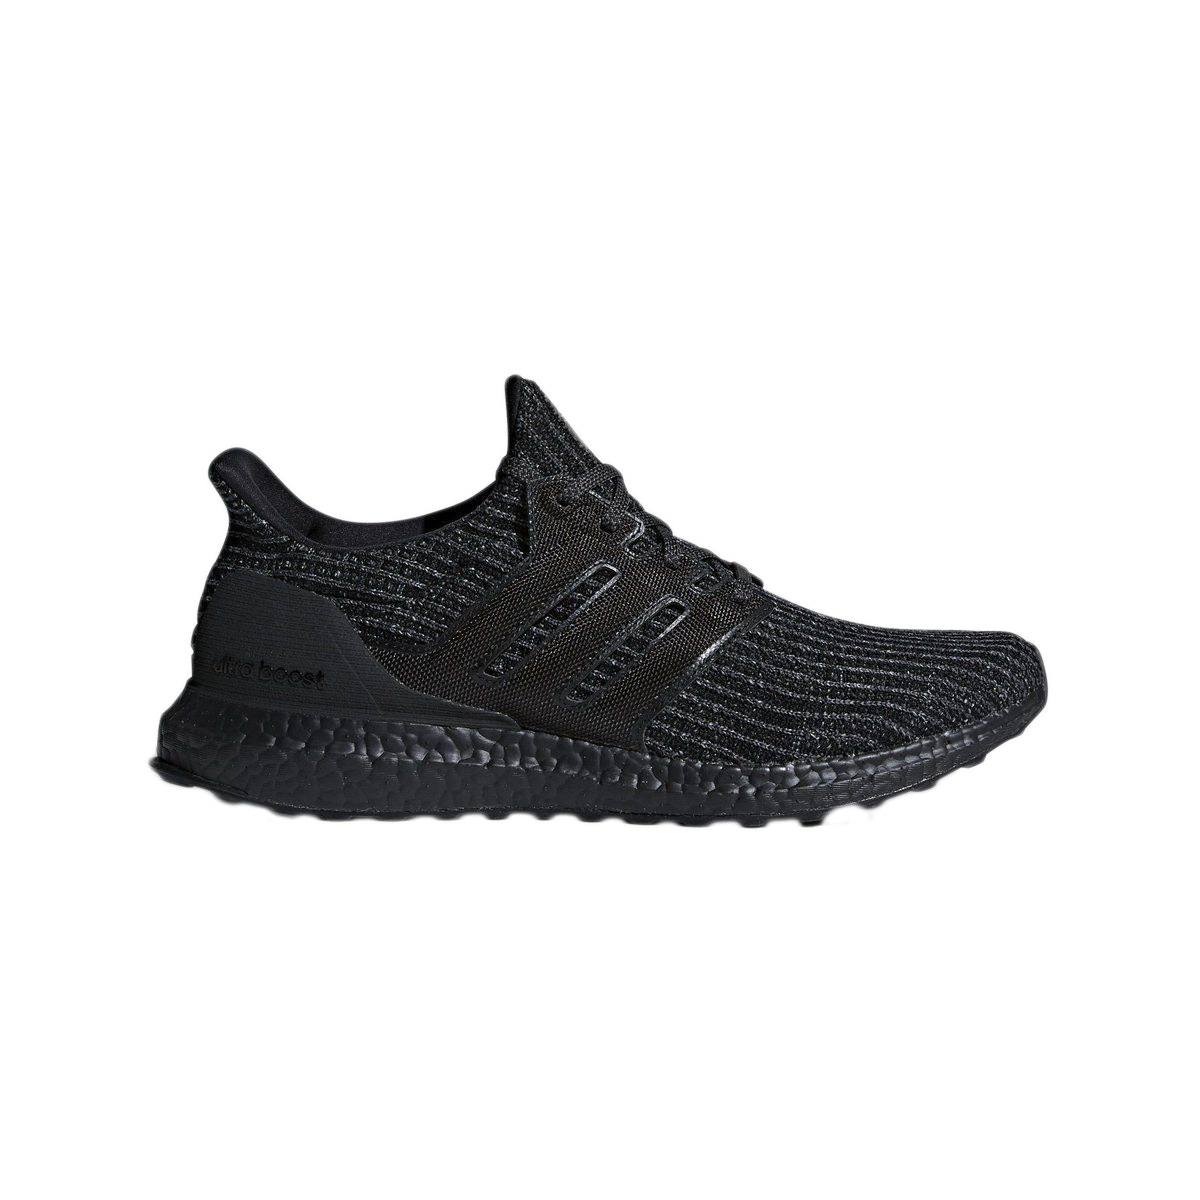 2469e2cb6 adidas ultra boost running shoes limited edition adidas shoes outlet ...